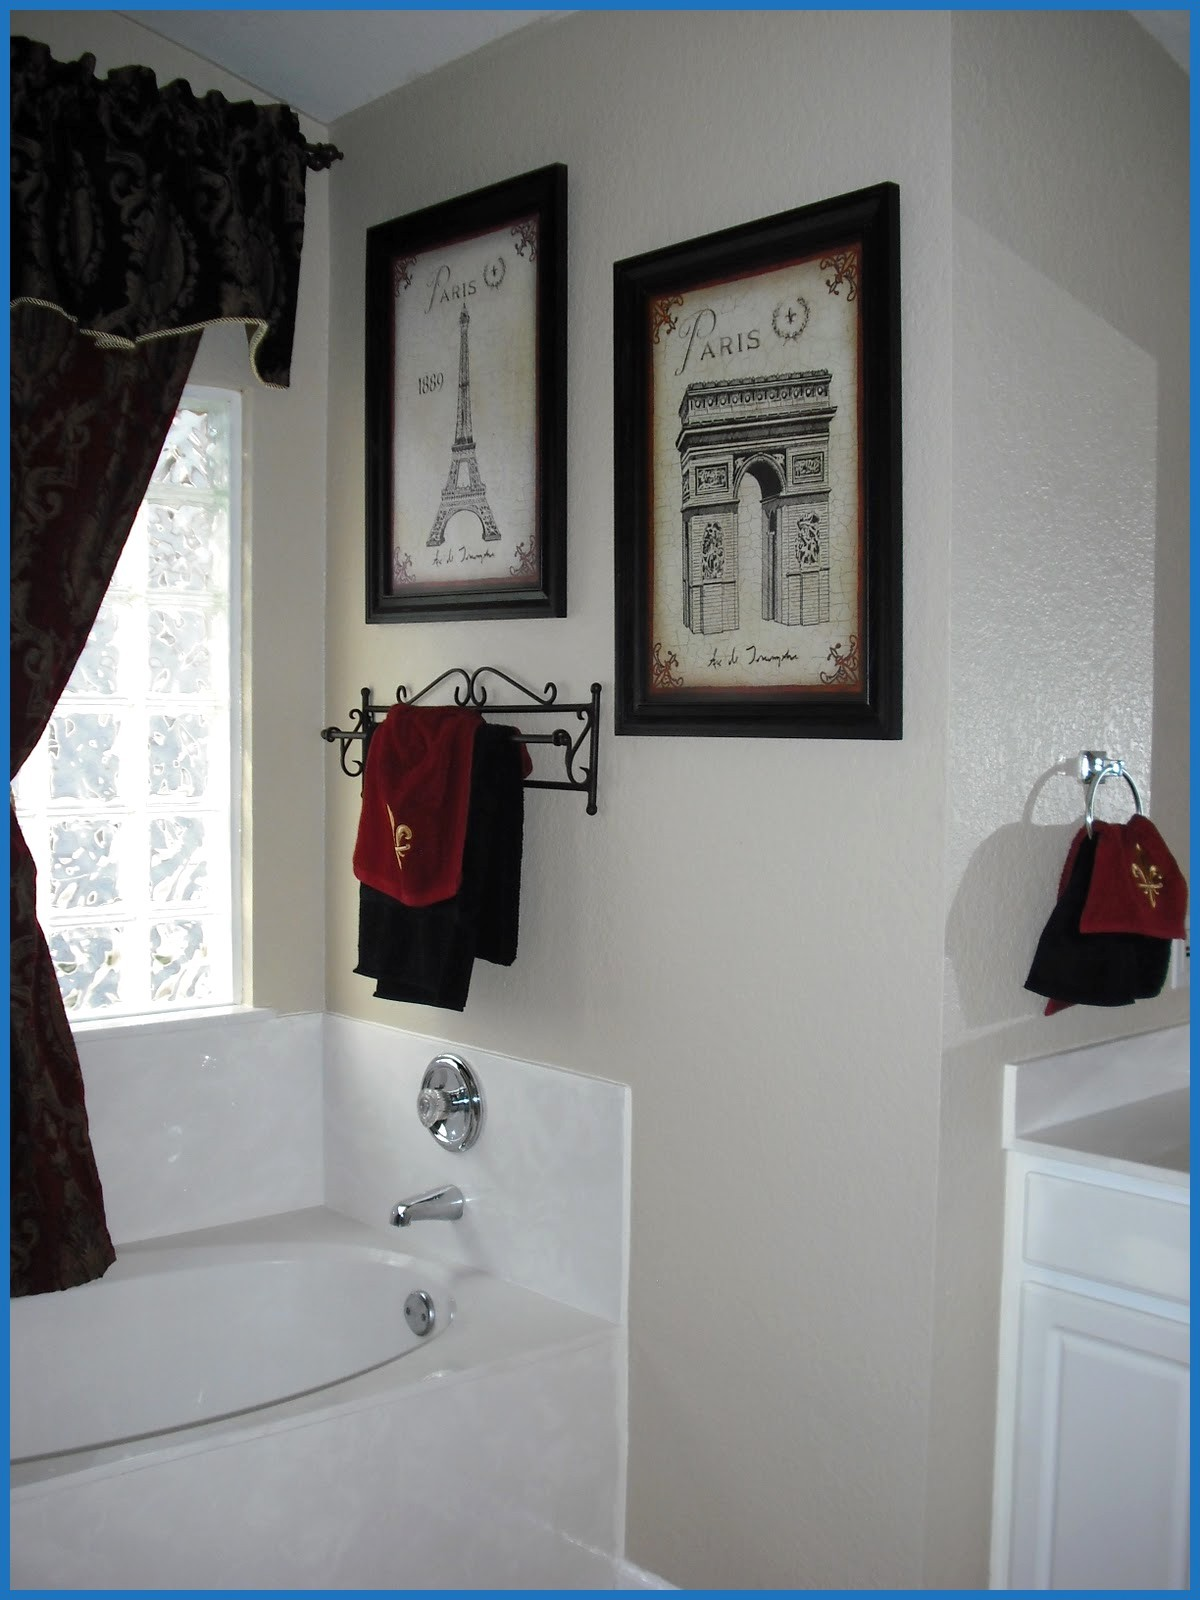 Paris themed Bathroom Accessories Unique Elegantinspirationalluxuryfelegant Paris themed Bathroom Photo